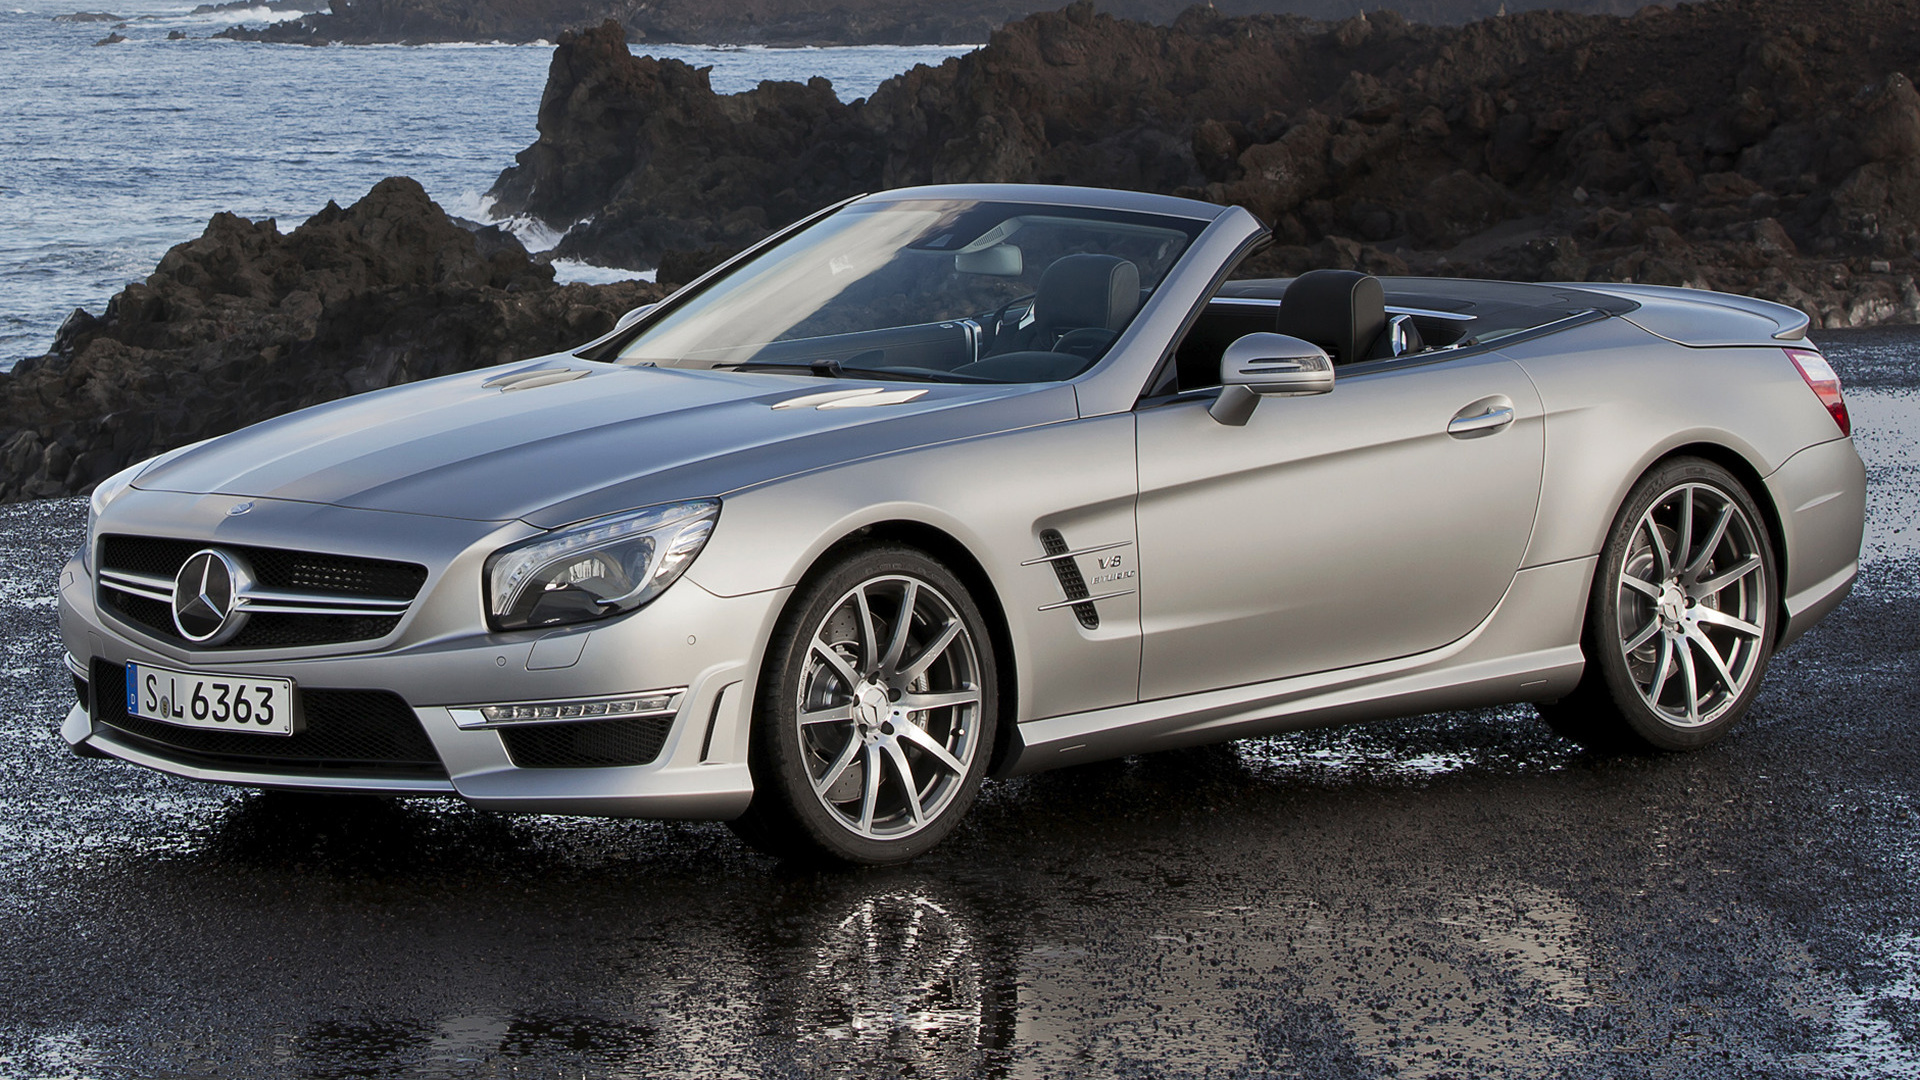 mercedes benz sl 63 amg 2012 wallpapers and hd images. Black Bedroom Furniture Sets. Home Design Ideas